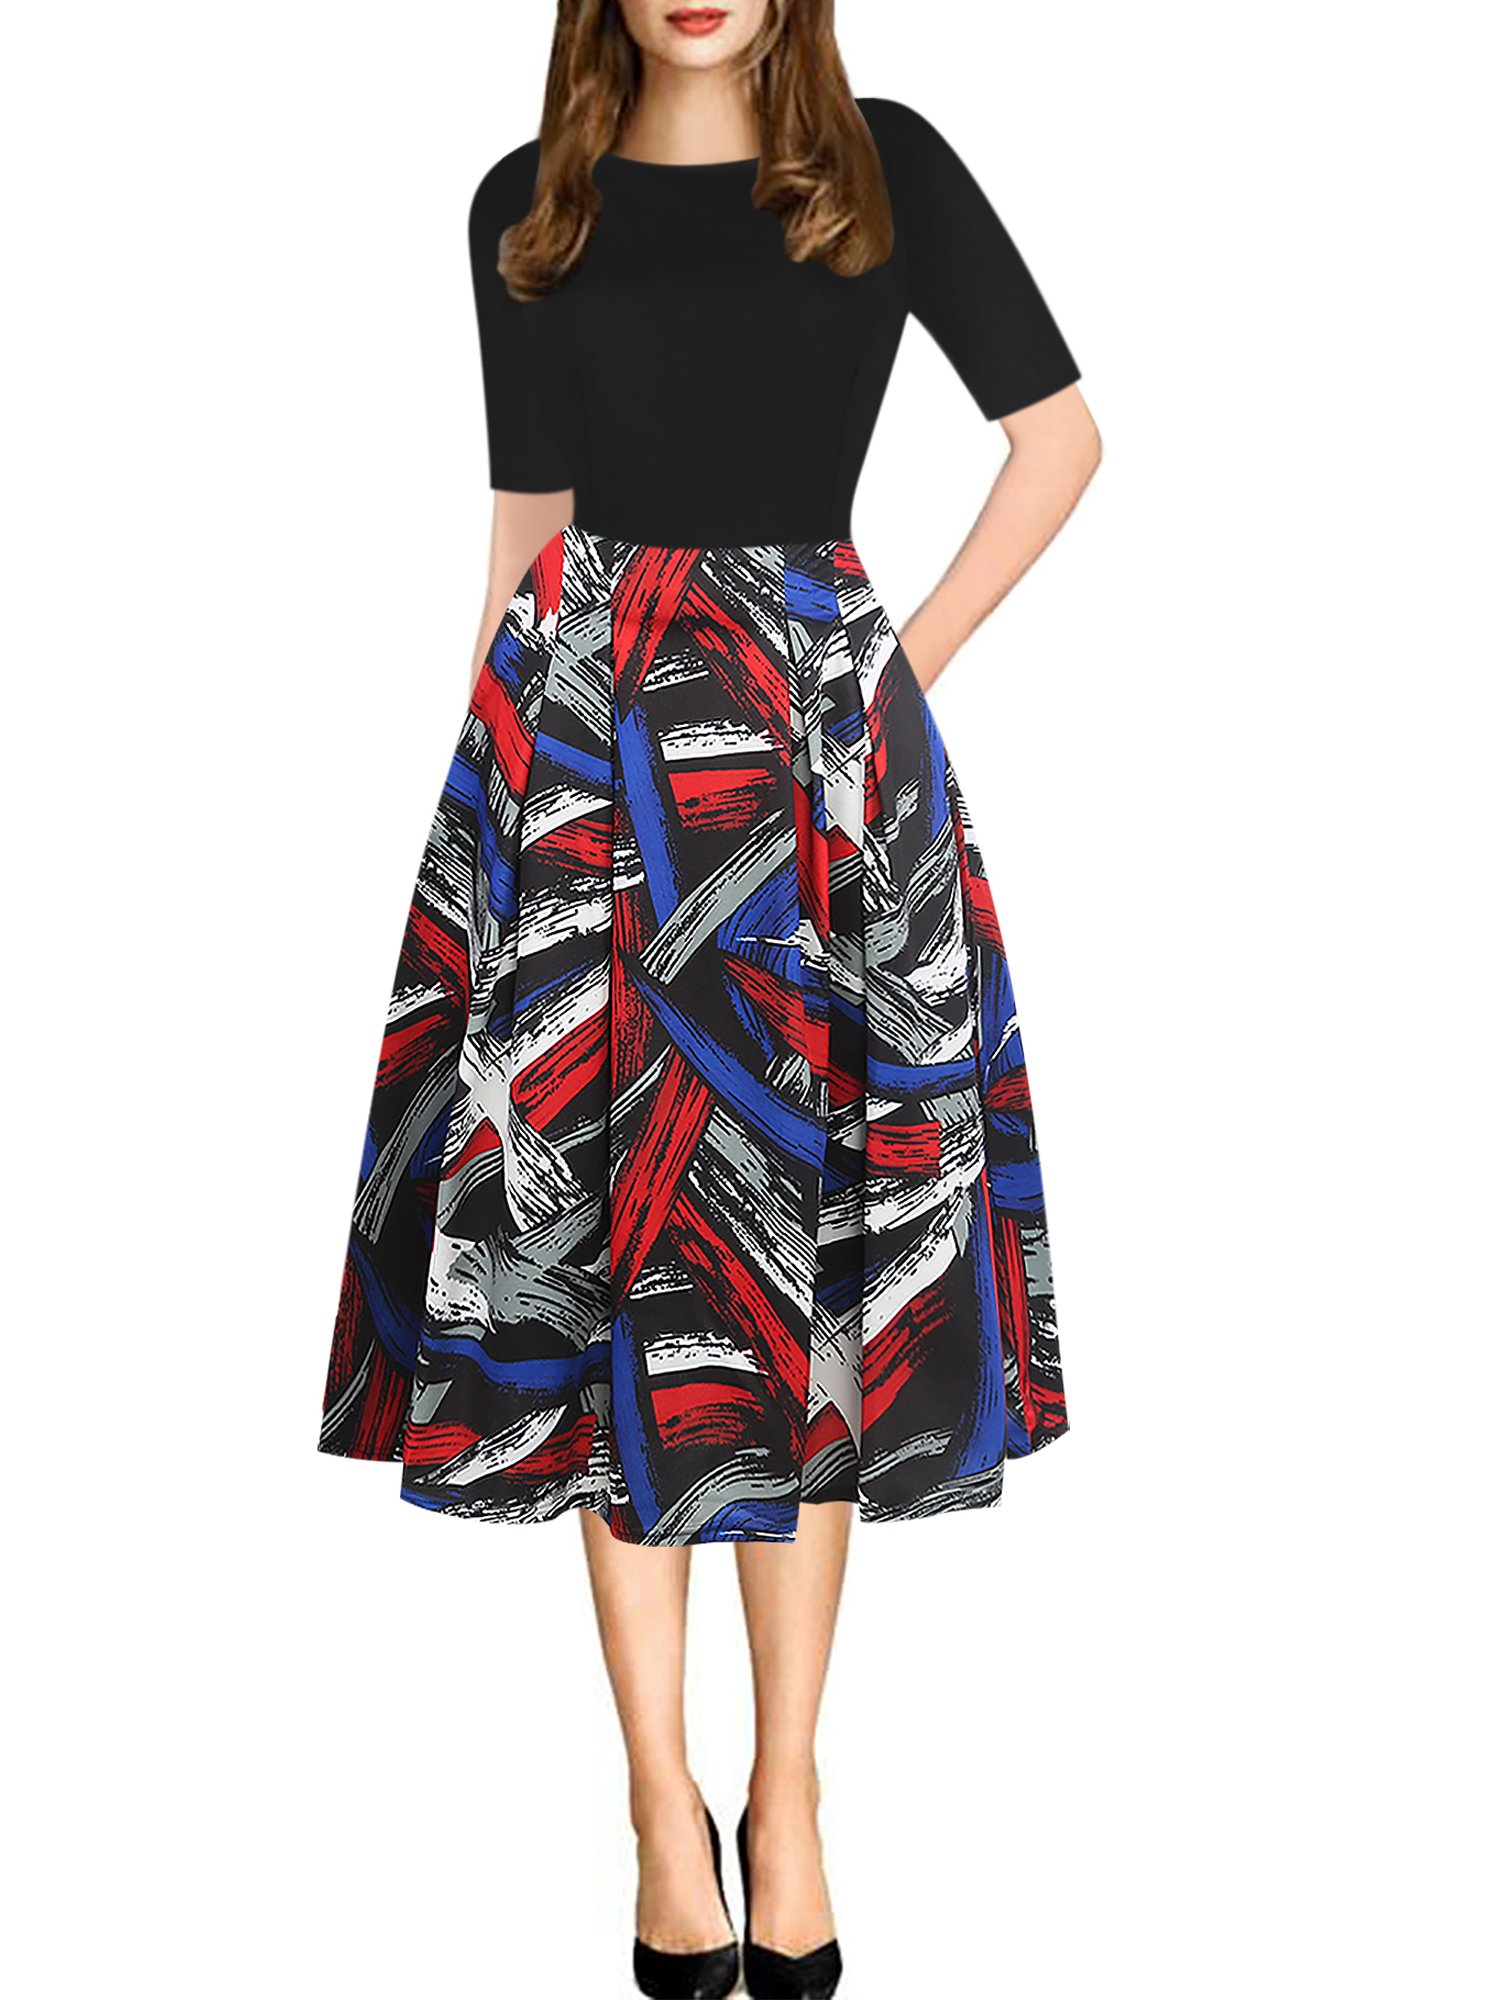 oxiuly Women's Vintage Patchwork Pockets Puffy Swing Casual Party Dress OX165 (3XL, Multi Stripe)